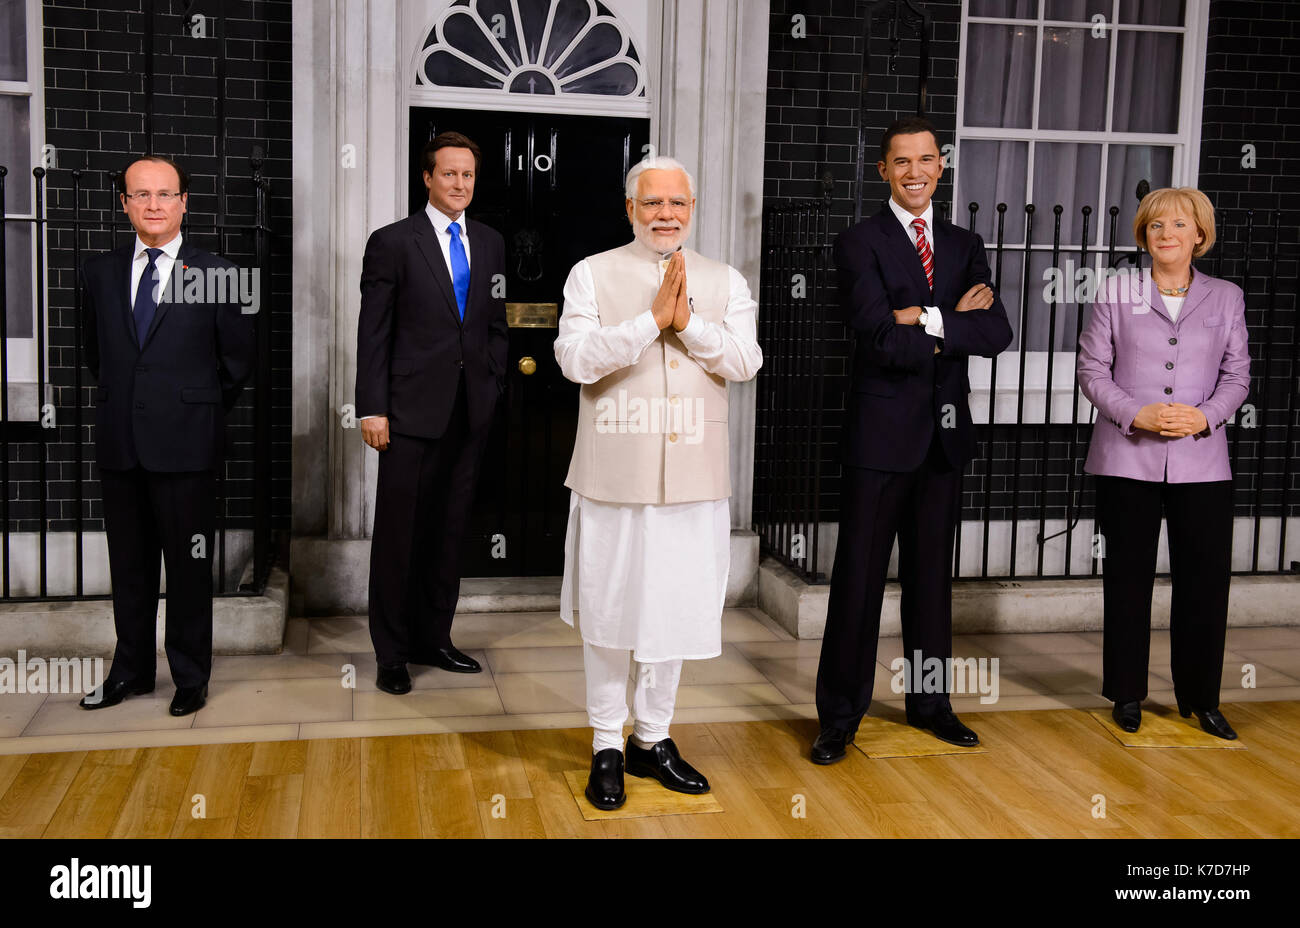 Photo Must Be Credited ©Alpha Press 065630 28/04/2016 Indian Prime Minister, Narendra Modi, this morning took his place alongside other world leaders at Madame Tussaud's London. His new wax figure today arrived at the Baker Street attraction fresh from Delhi, where Mr Modi had a private viewing with his likeness last week. - Stock Image